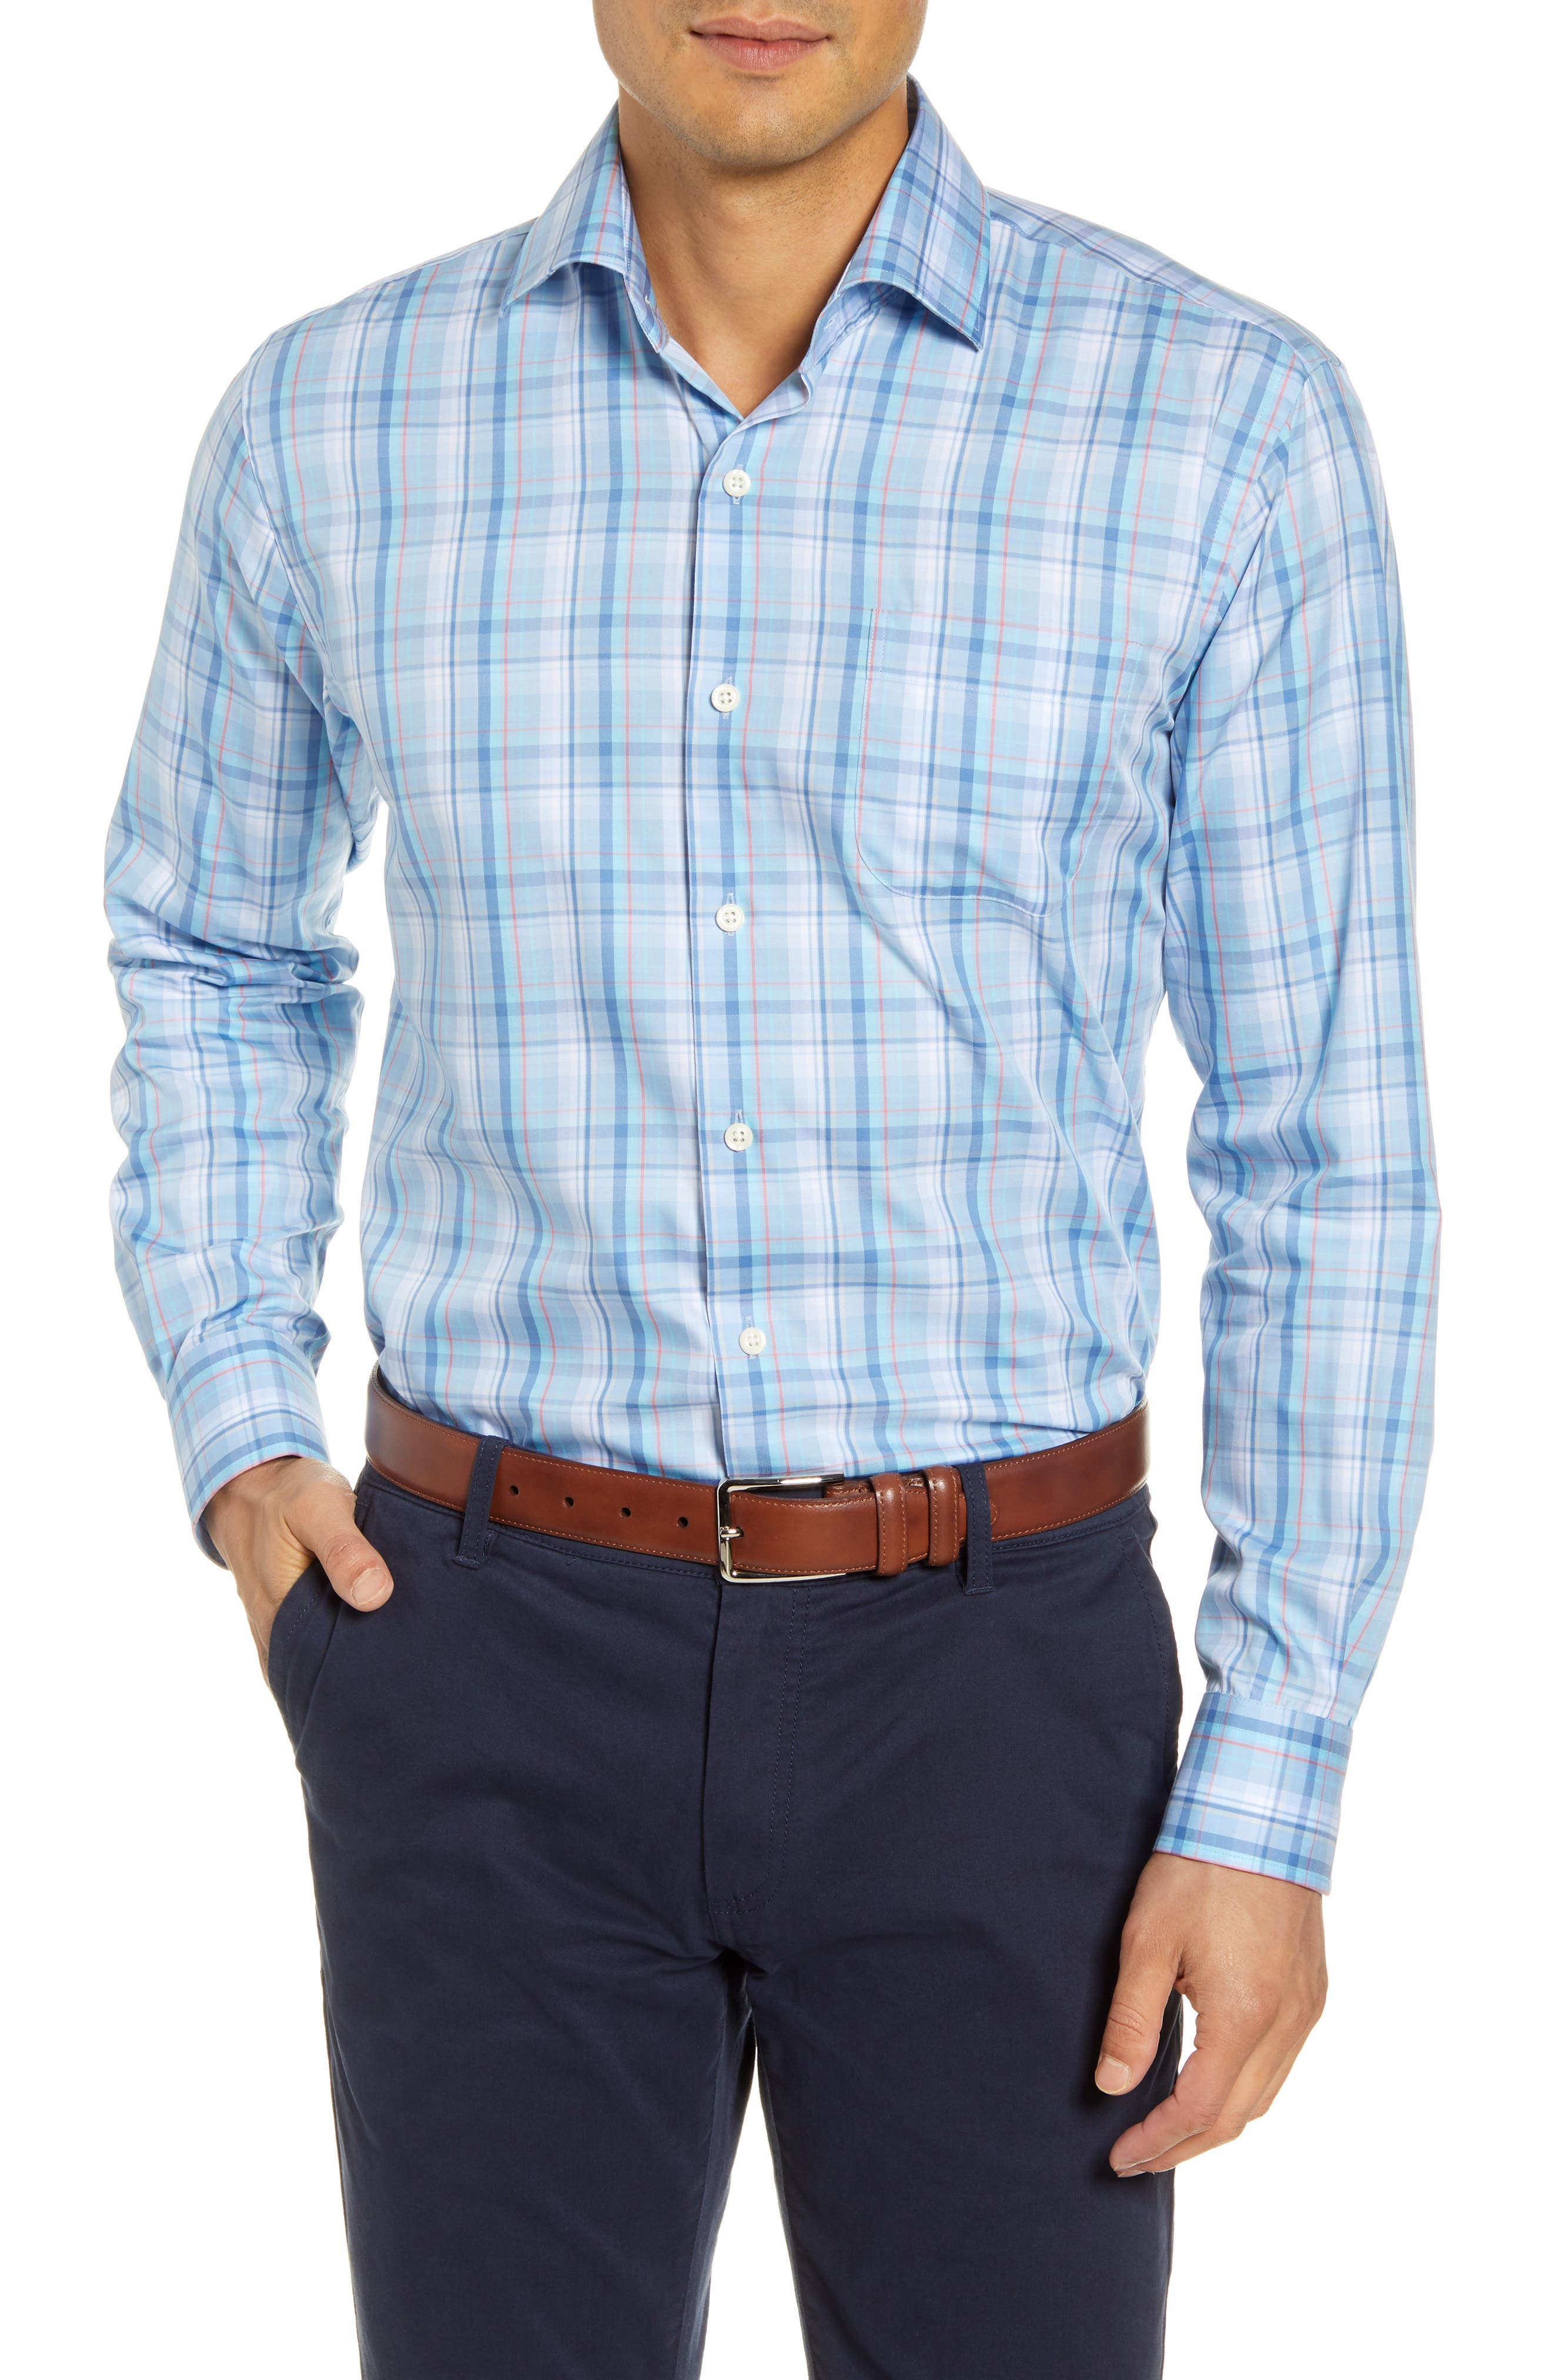 Bright plaid brings a sharp, classic look to a comfortably fitting sport shirt tailored from an extra-soft blend of cotton and silk. Style Name: Peter Millar Avery Regular Fit Plaid Cotton & Silk Button-Up Shirt. Style Number: 5953474. Available in stores.